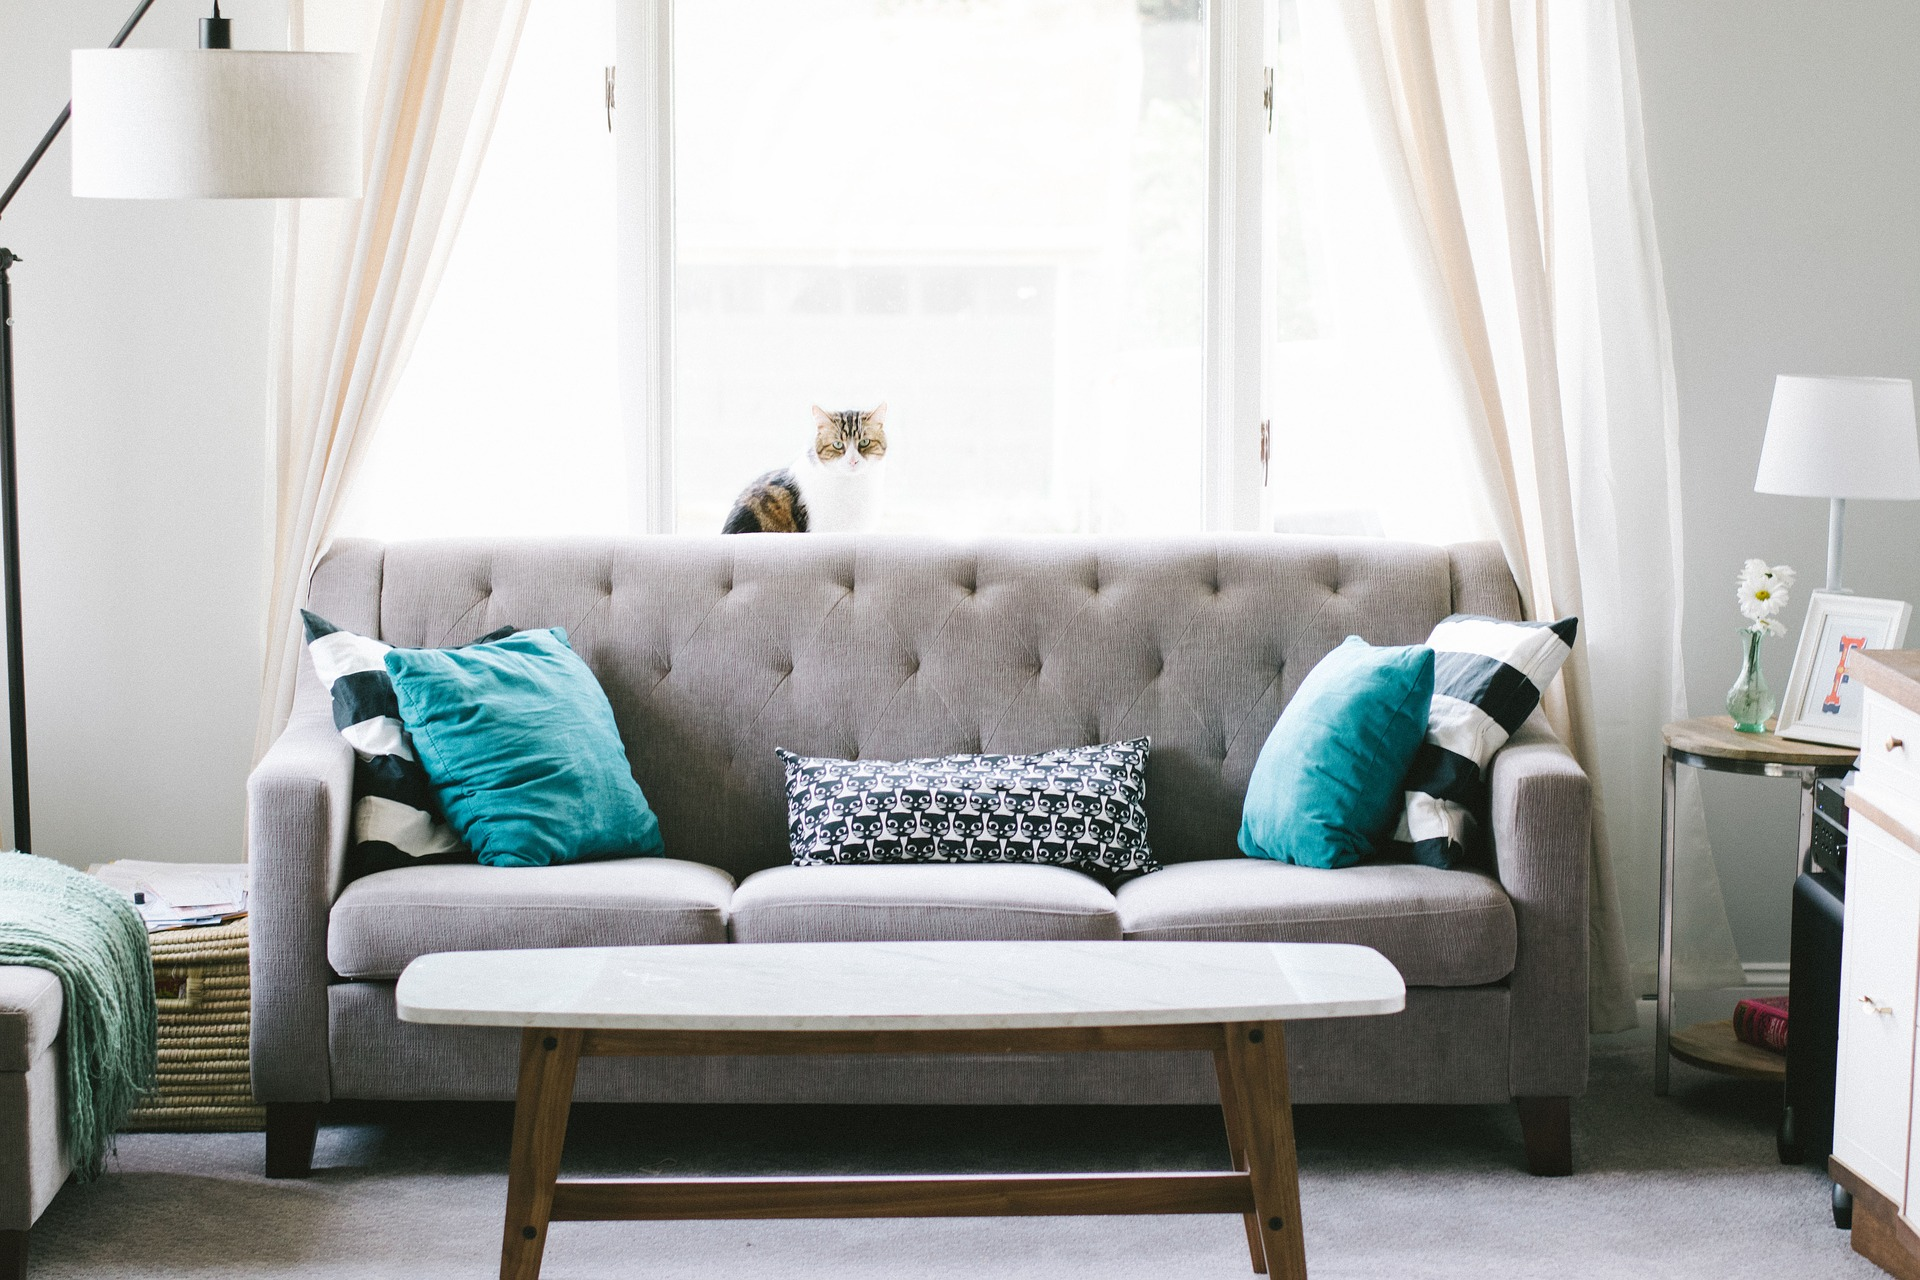 Buy Sofa's that compliment your home decor.